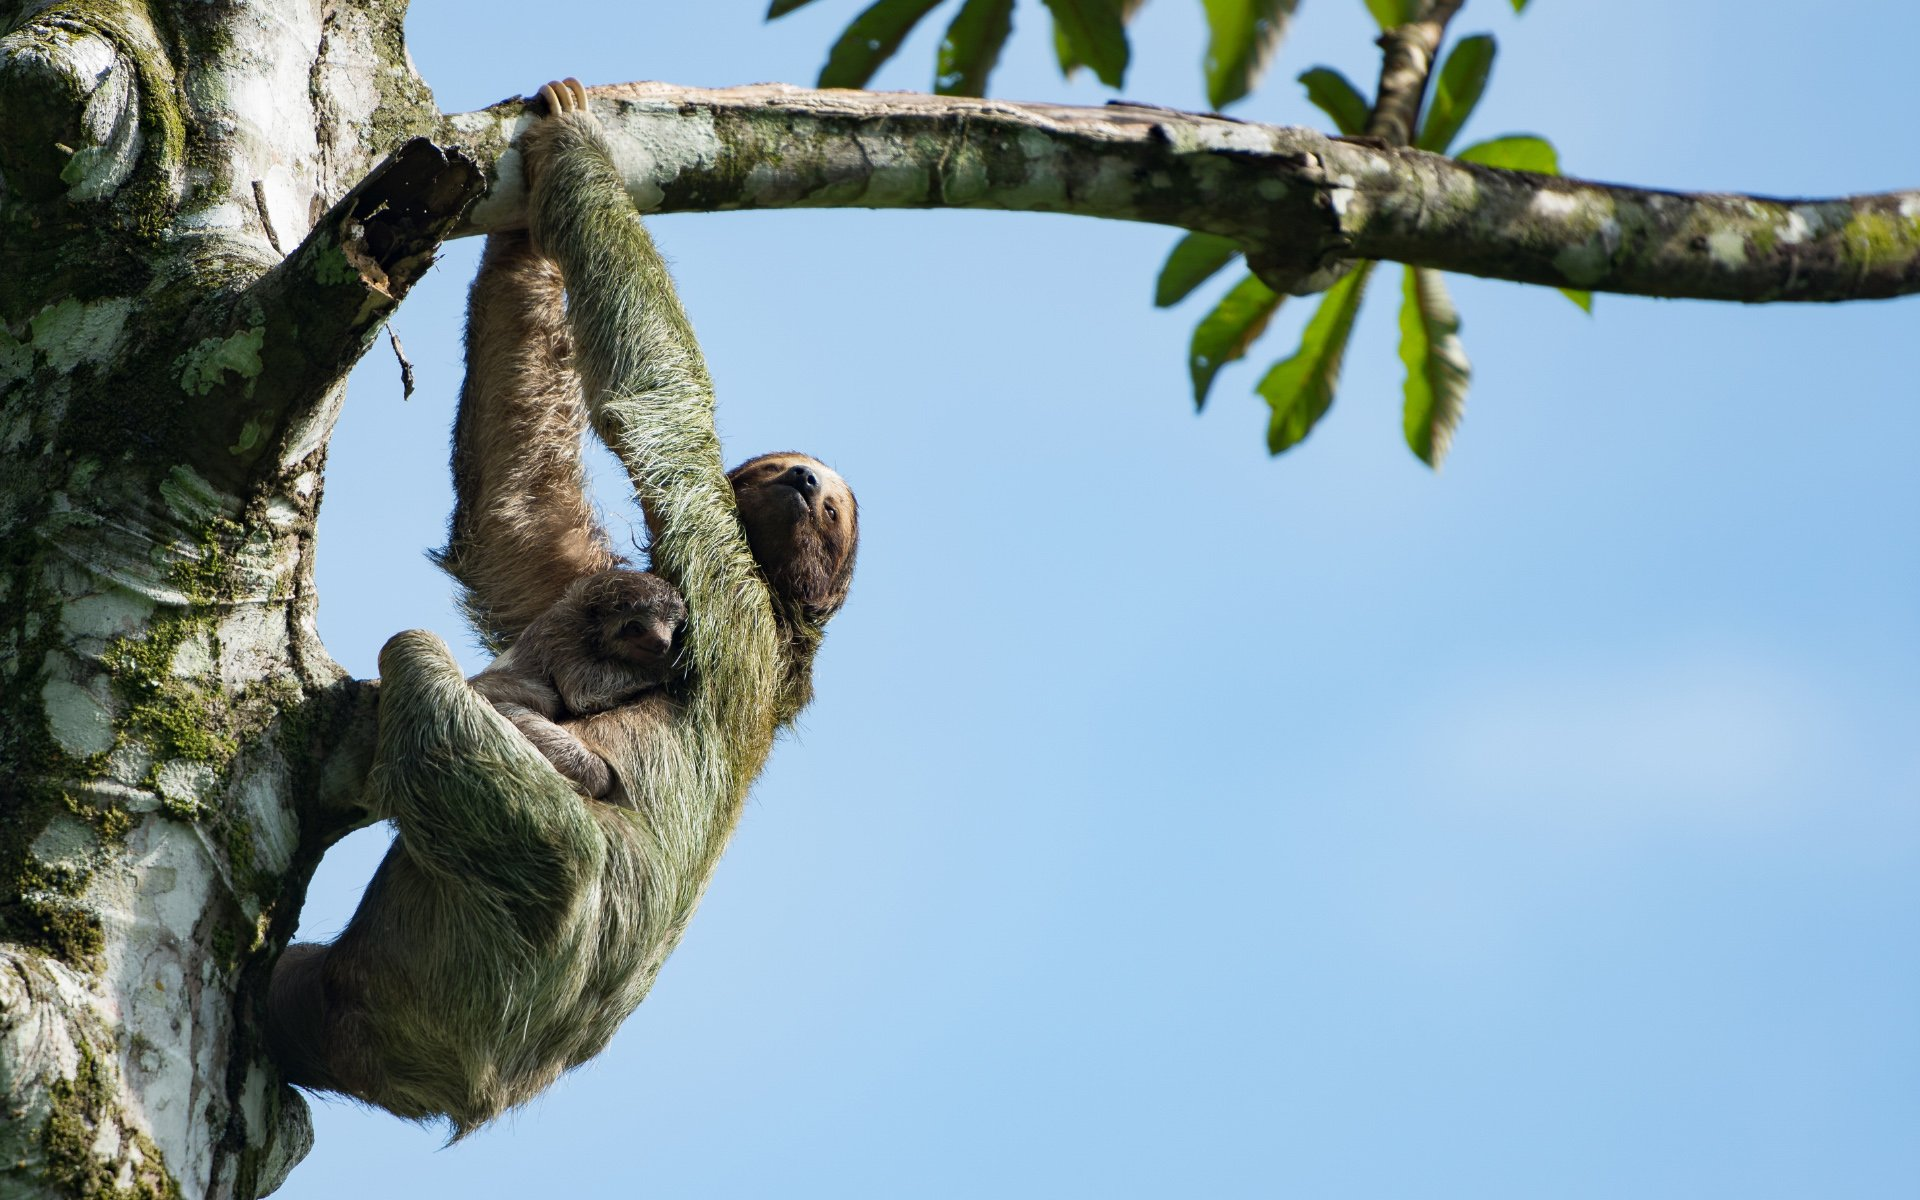 Sloth Mum and Baby Hanging in Tree